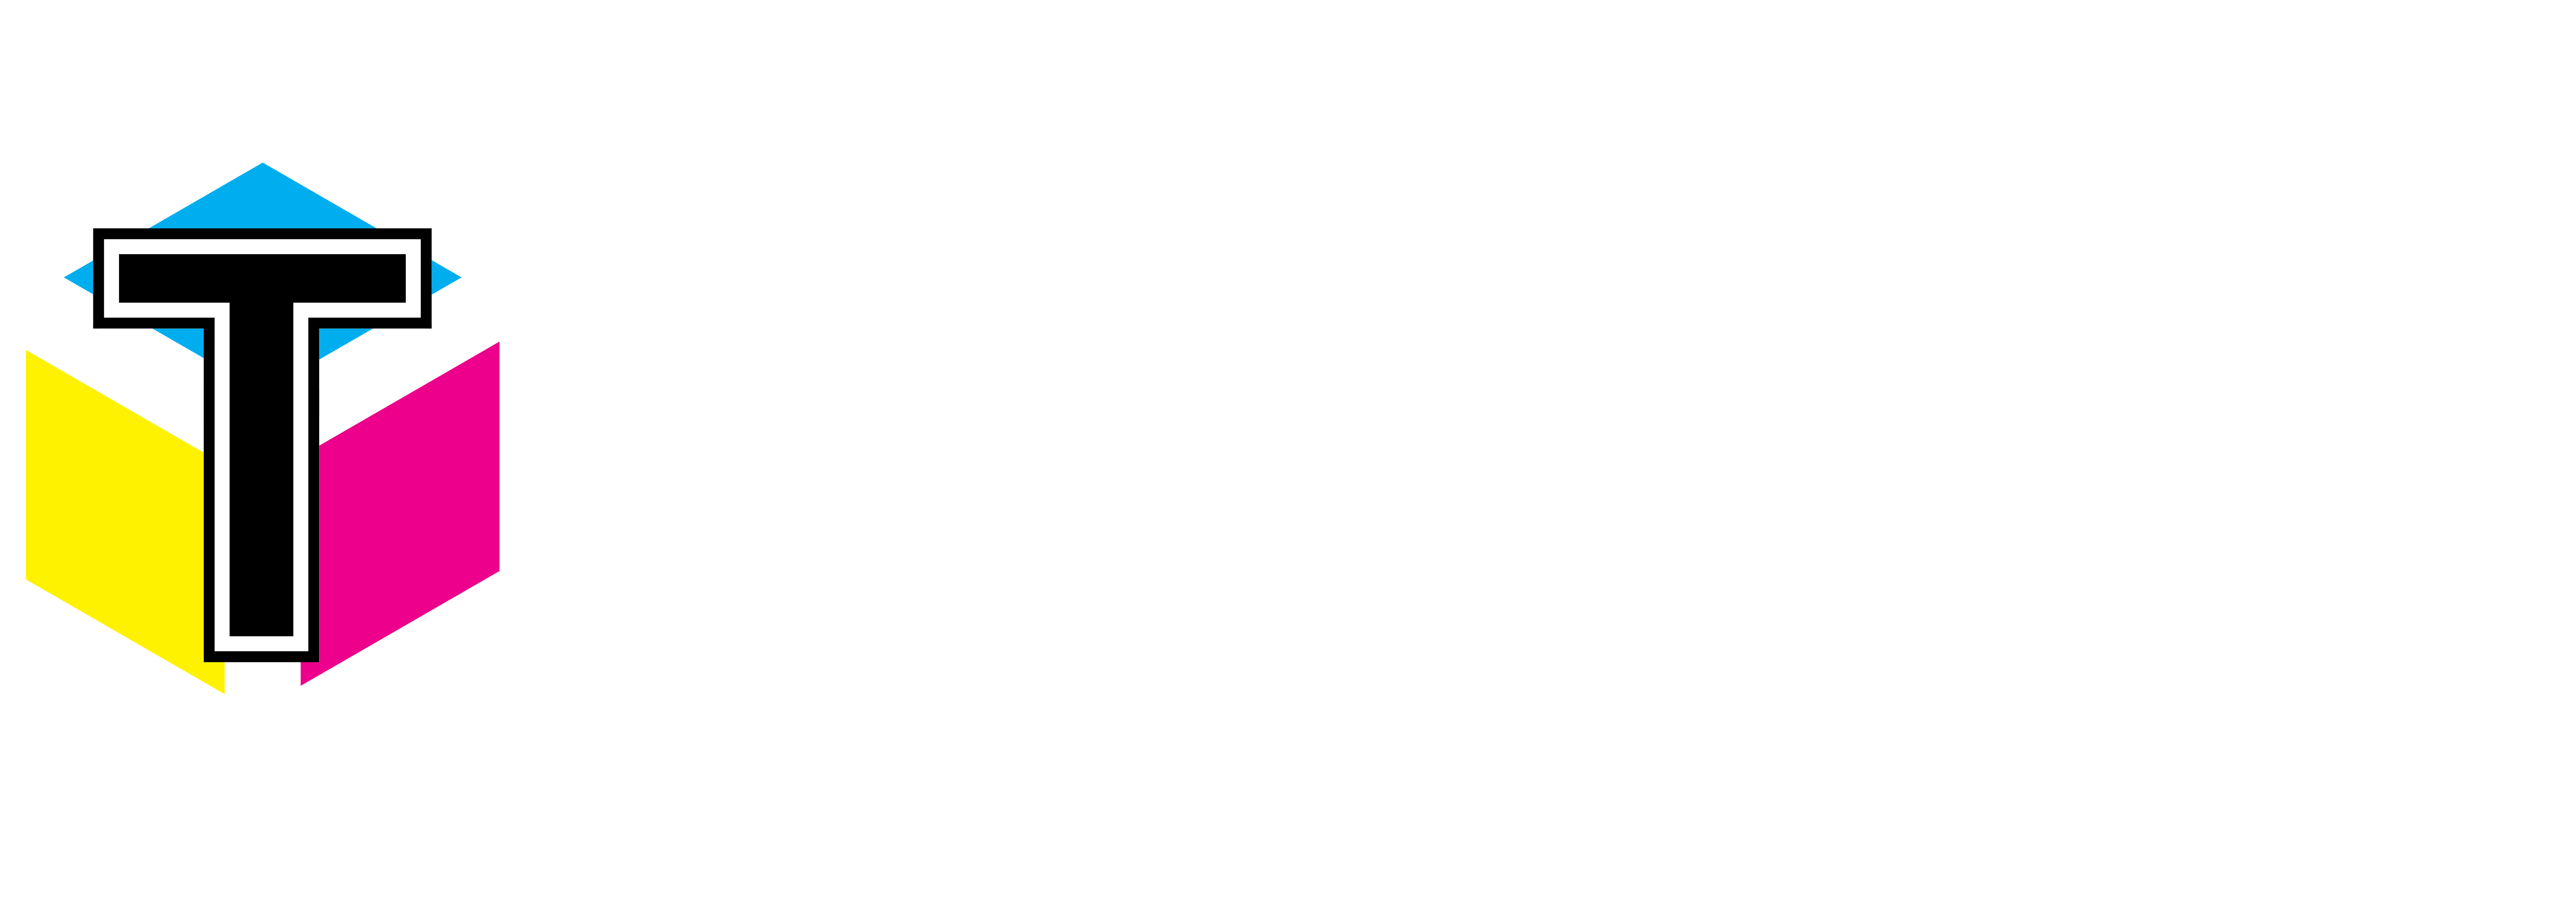 Turtlshel Project